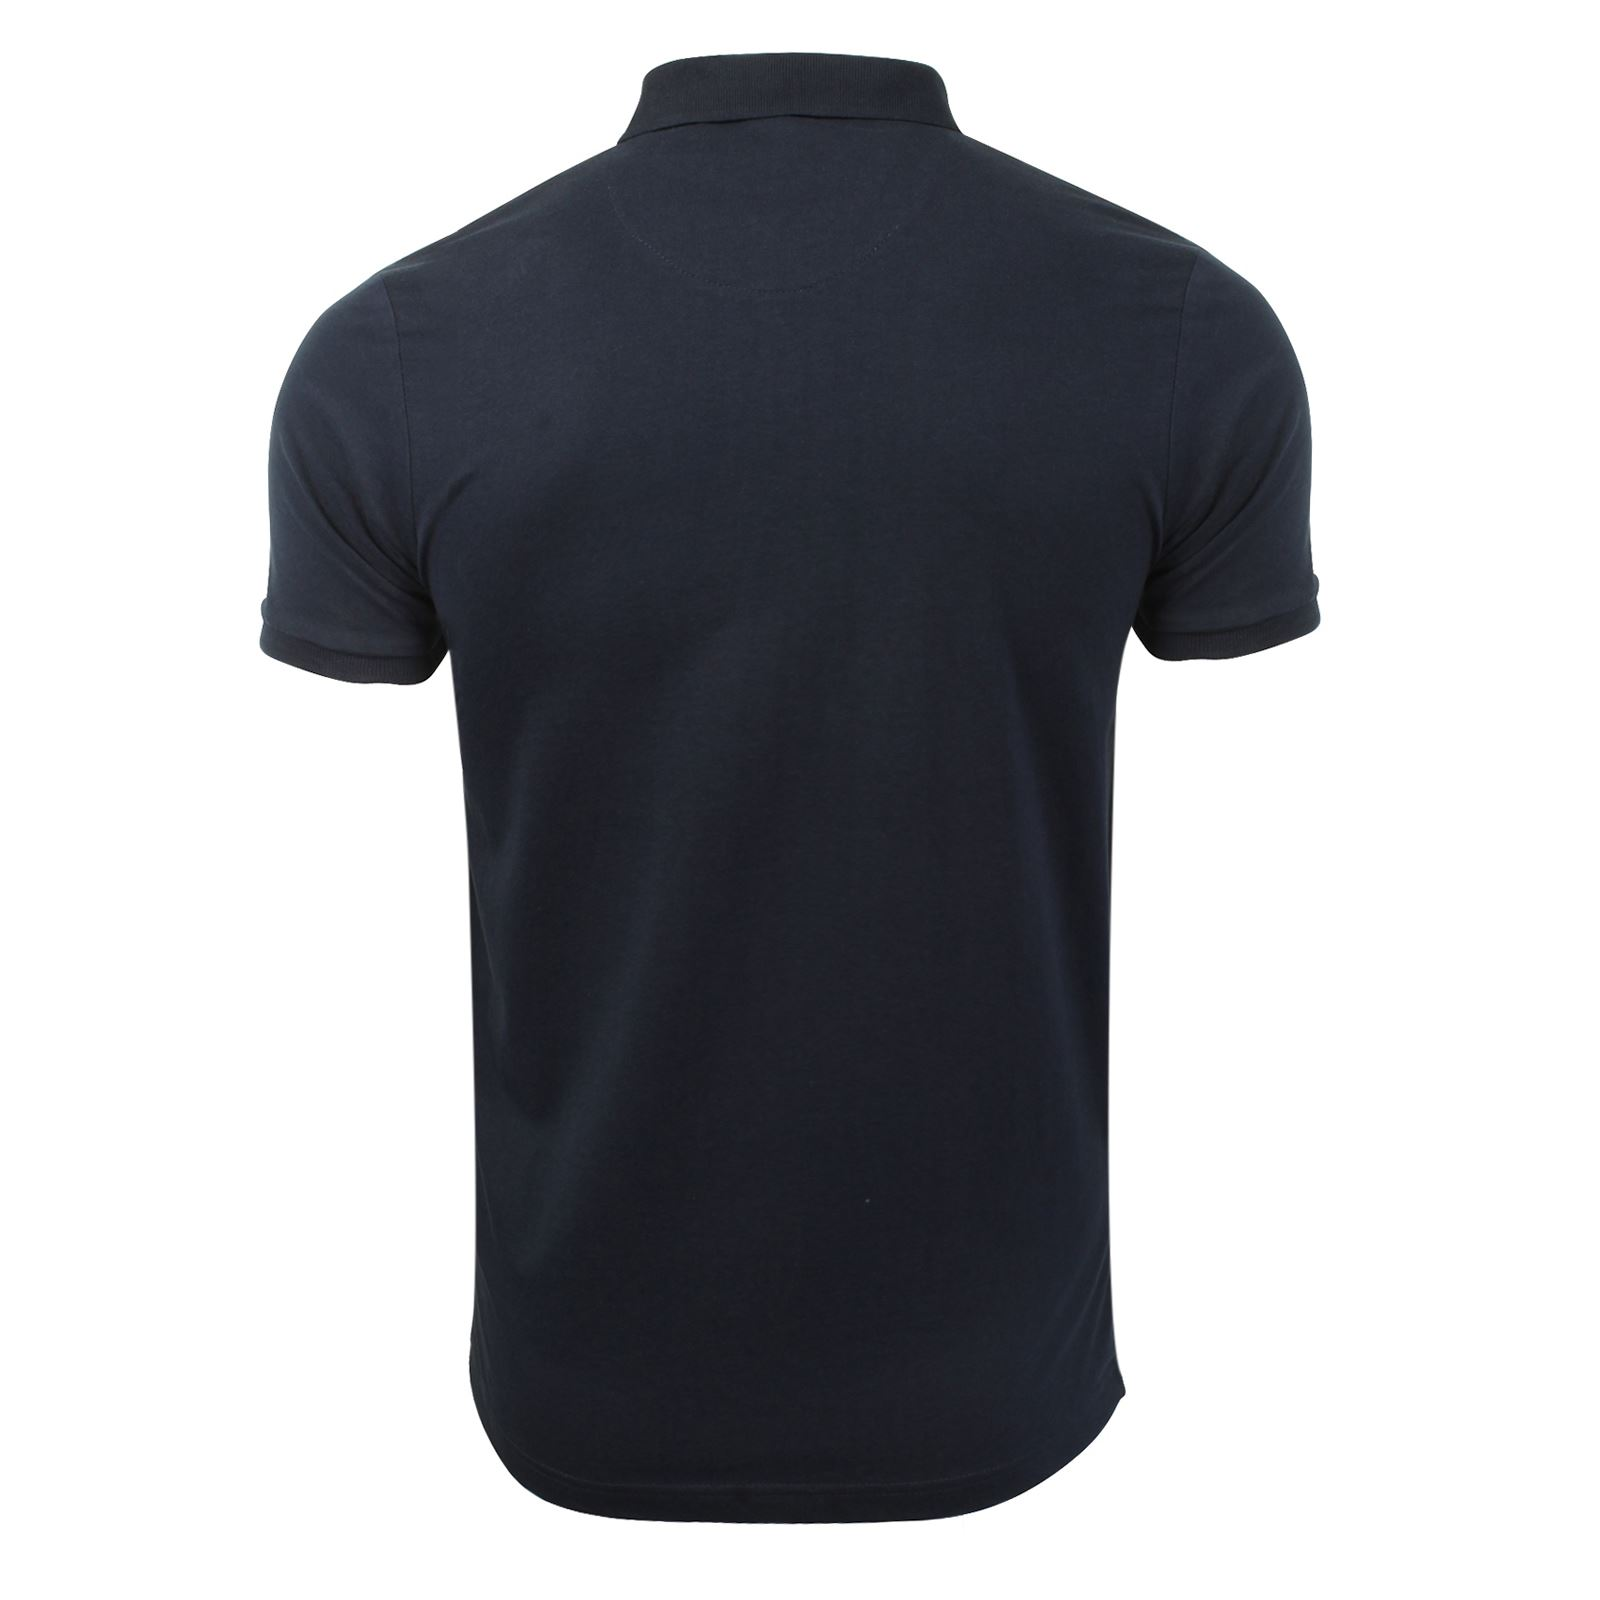 Mens-Polo-T-Shirt-Brave-Soul-Chimera-Chambray-Collared-Cotton-Casual-Top thumbnail 54